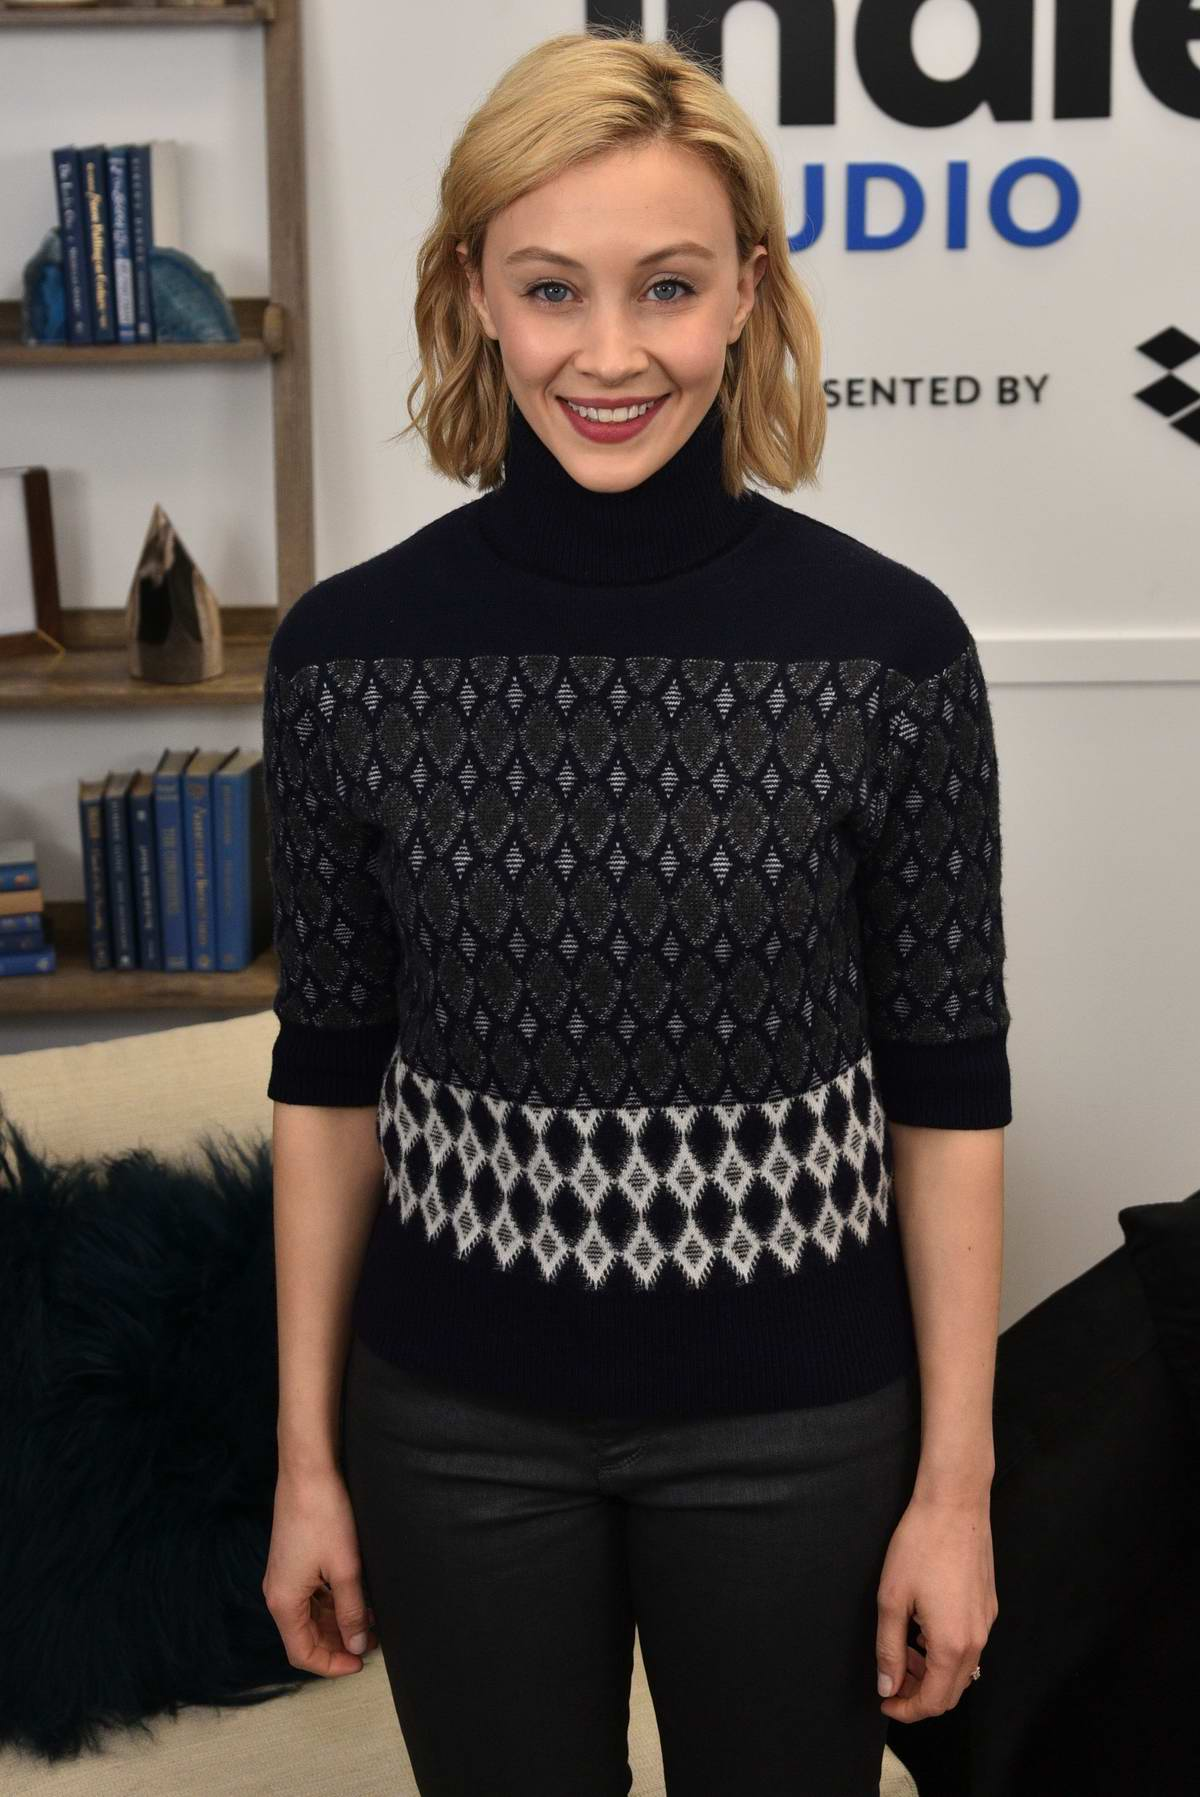 Sarah Gadon attends the IndieWire Sundance Studio presented by Dropbox at Sundance Film Festival 2020 in Park City, Utah